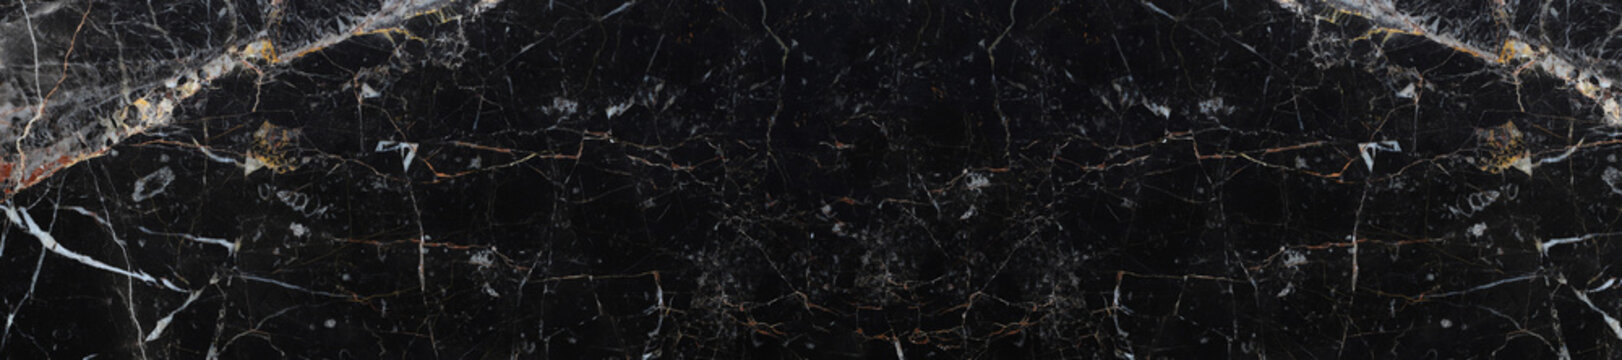 panorama texture black marble background